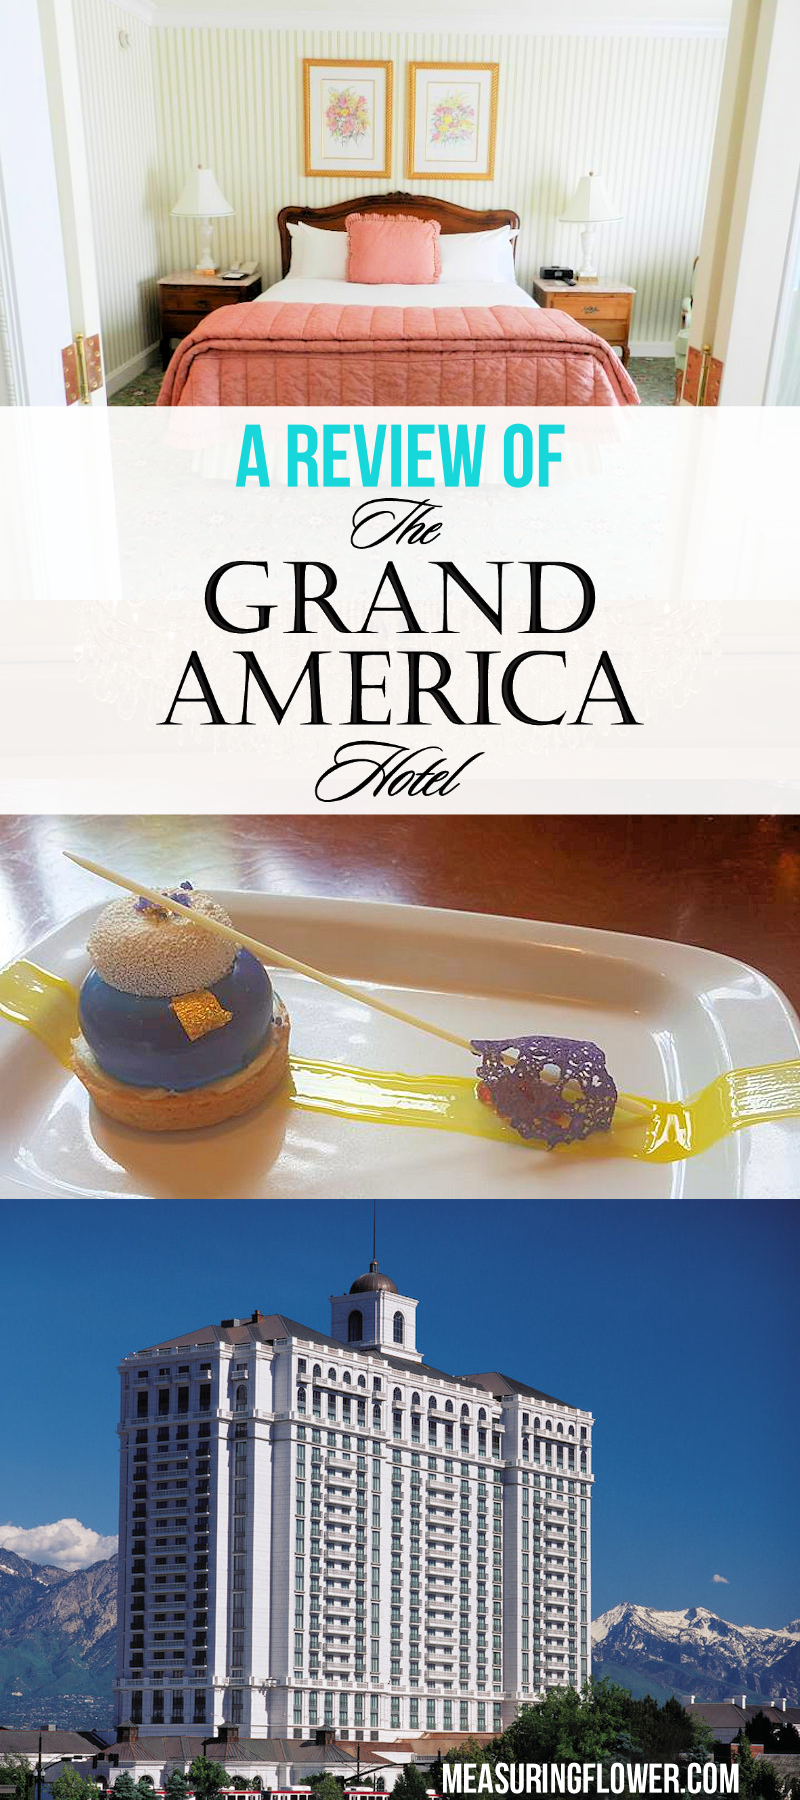 A Review of the Grand America Hotel